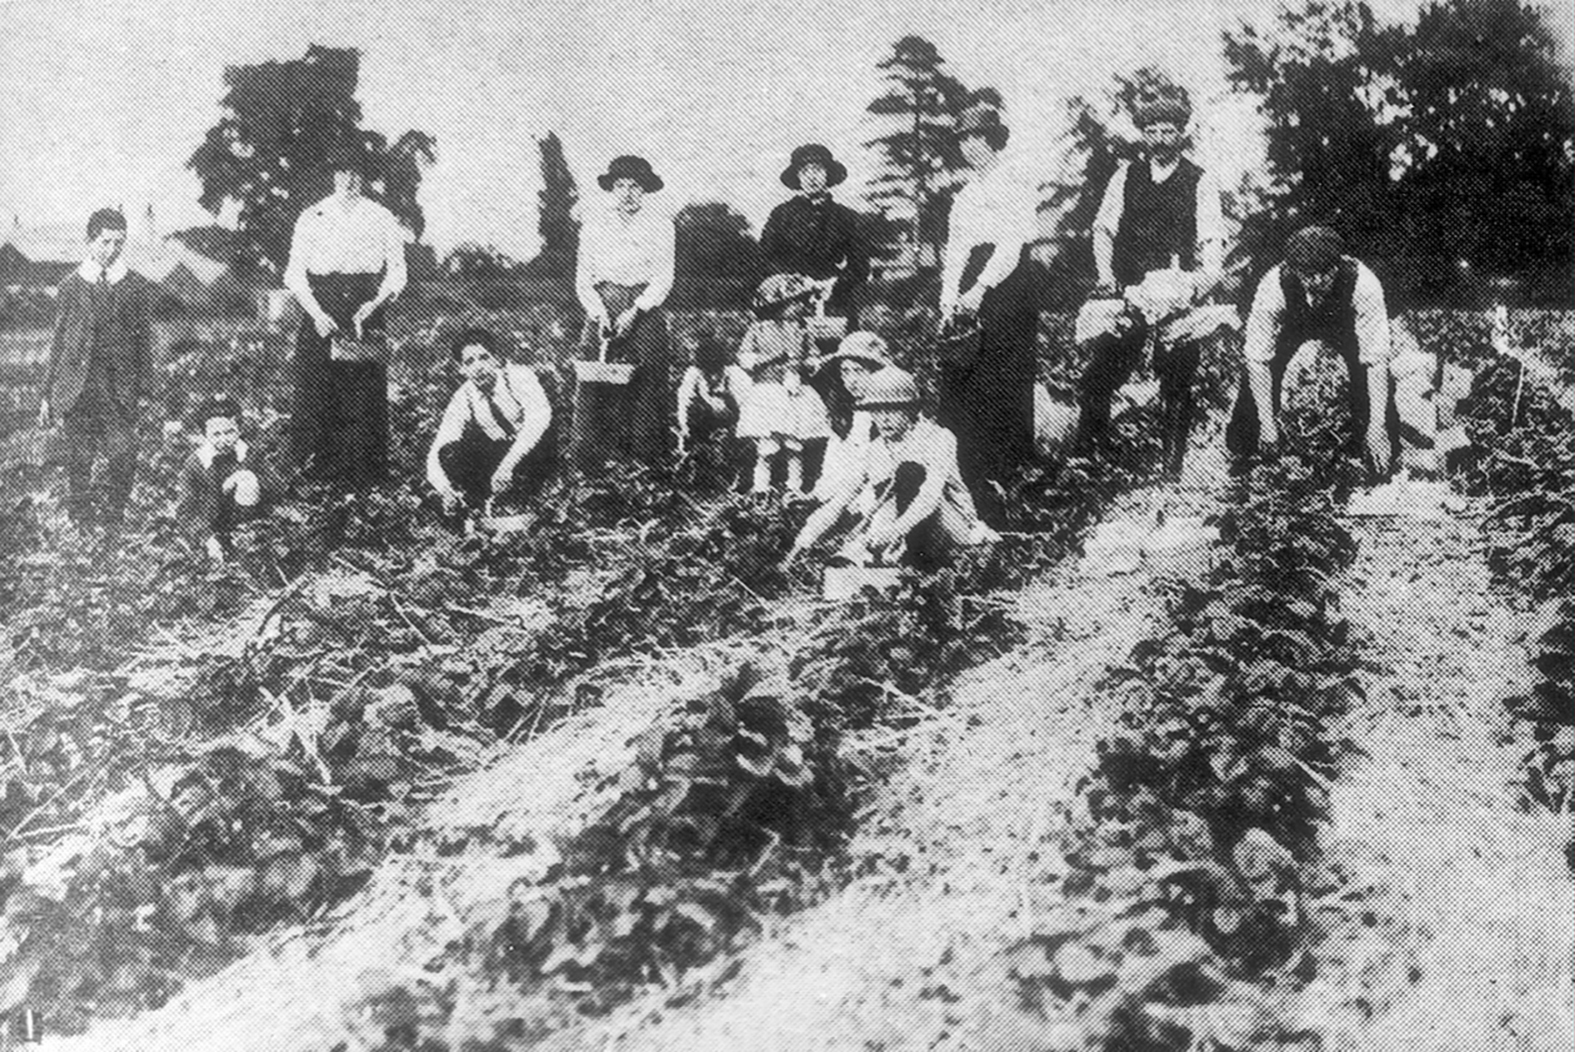 Strawberry picking in the early 20th century